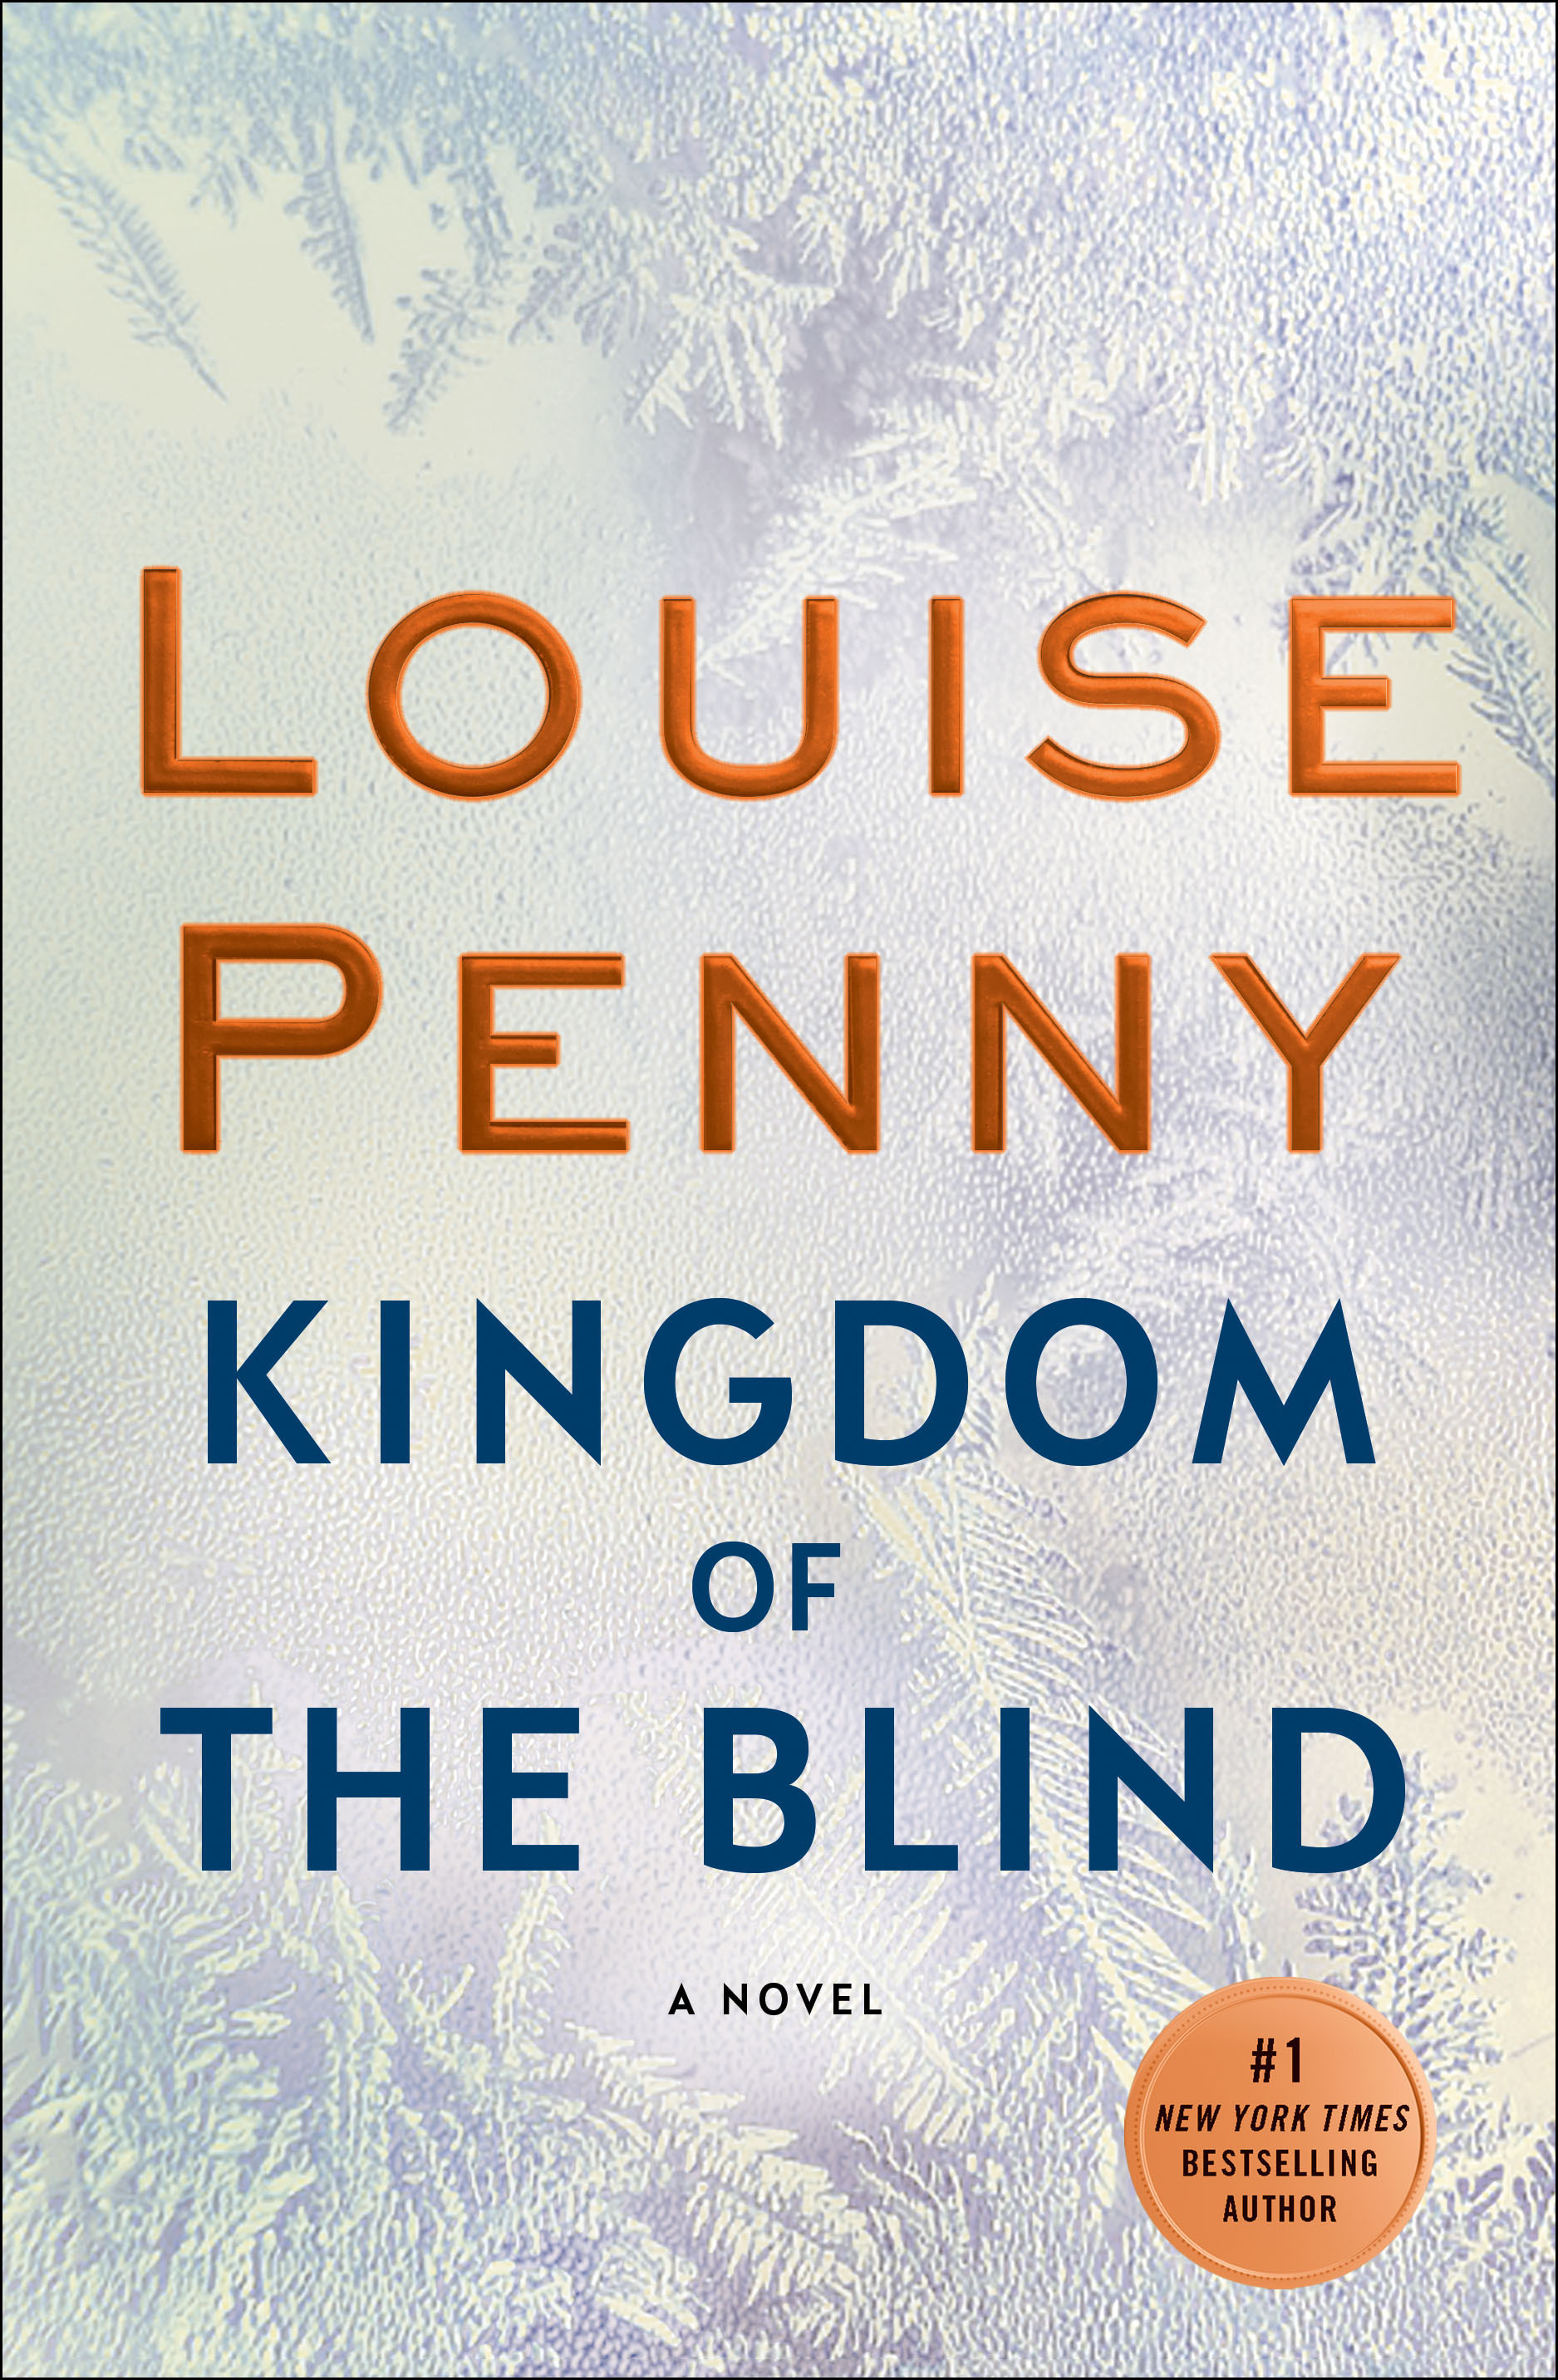 #14 Kingdom of the Blind  A Chief I - Louise Penny